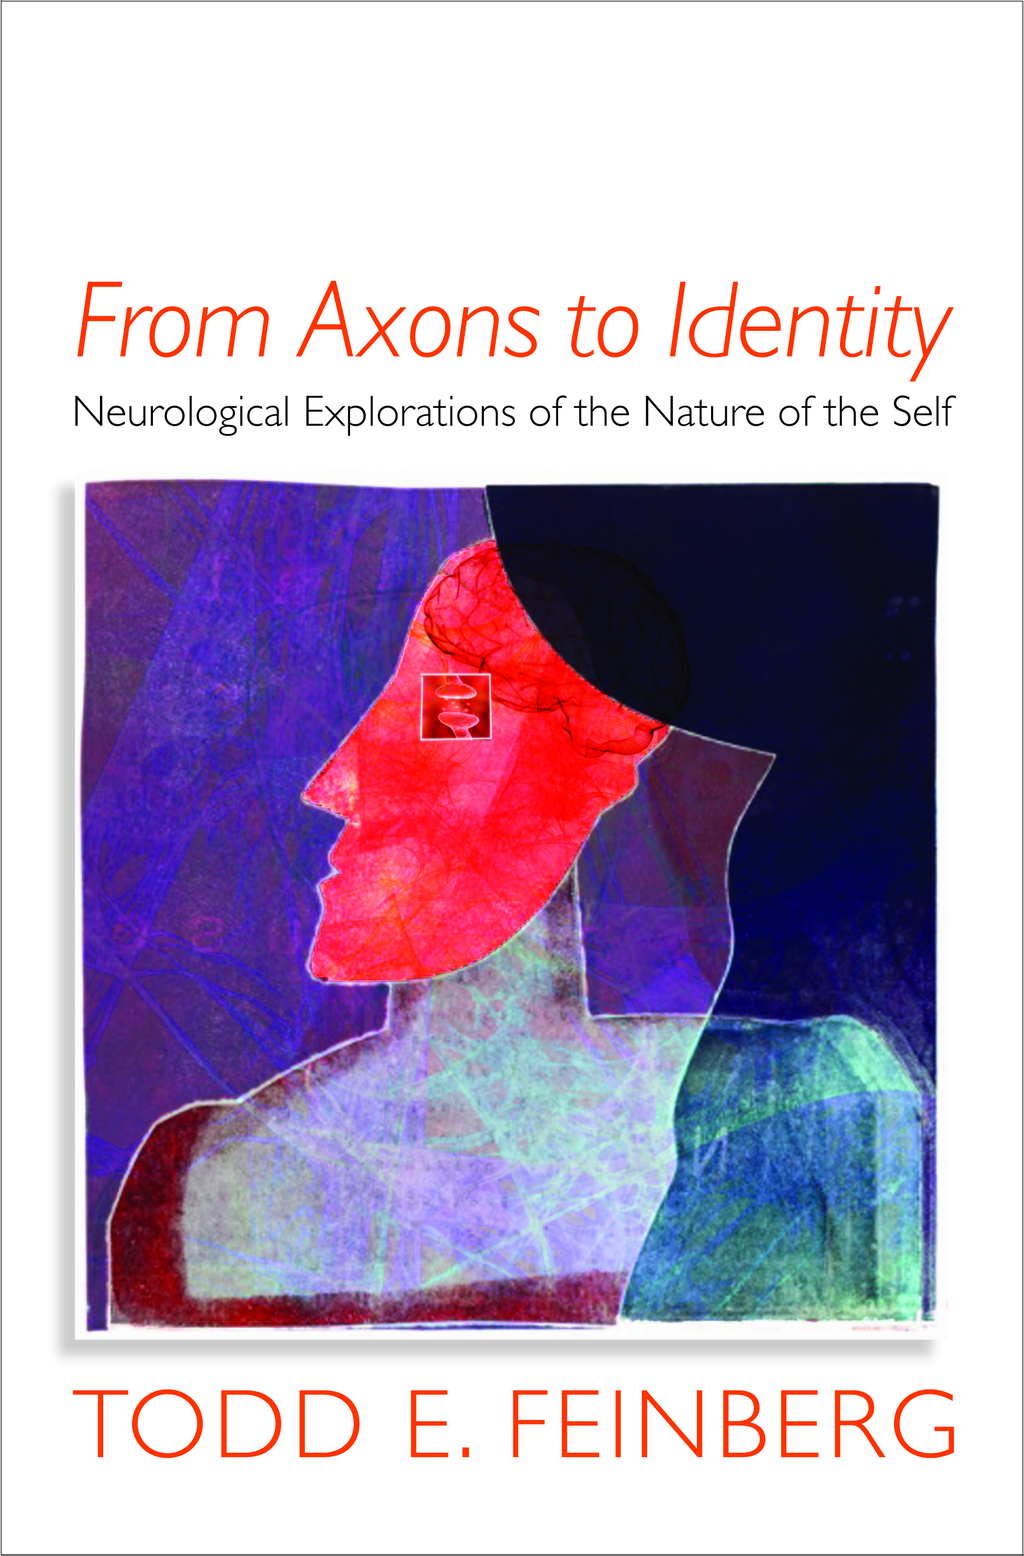 From Axons to Identity: Neurological Explorations of the Nature of the Self (Norton Series on Interpersonal Neurobiology) By: Todd E. Feinberg